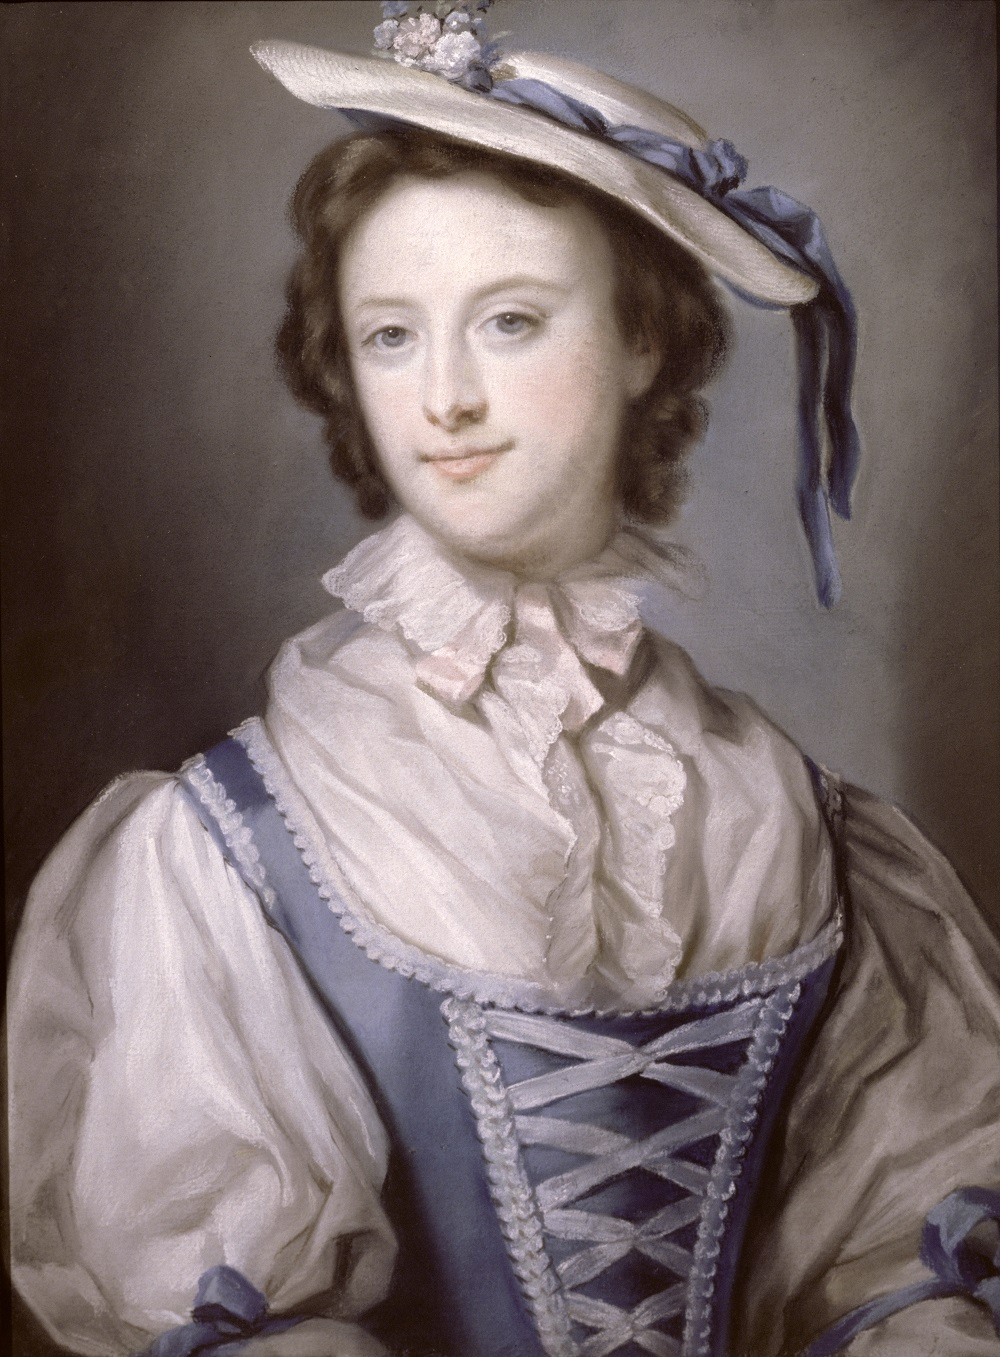 Lady Emily Lennox, by William Hoare © By permission of the trustees of Goodwood collection